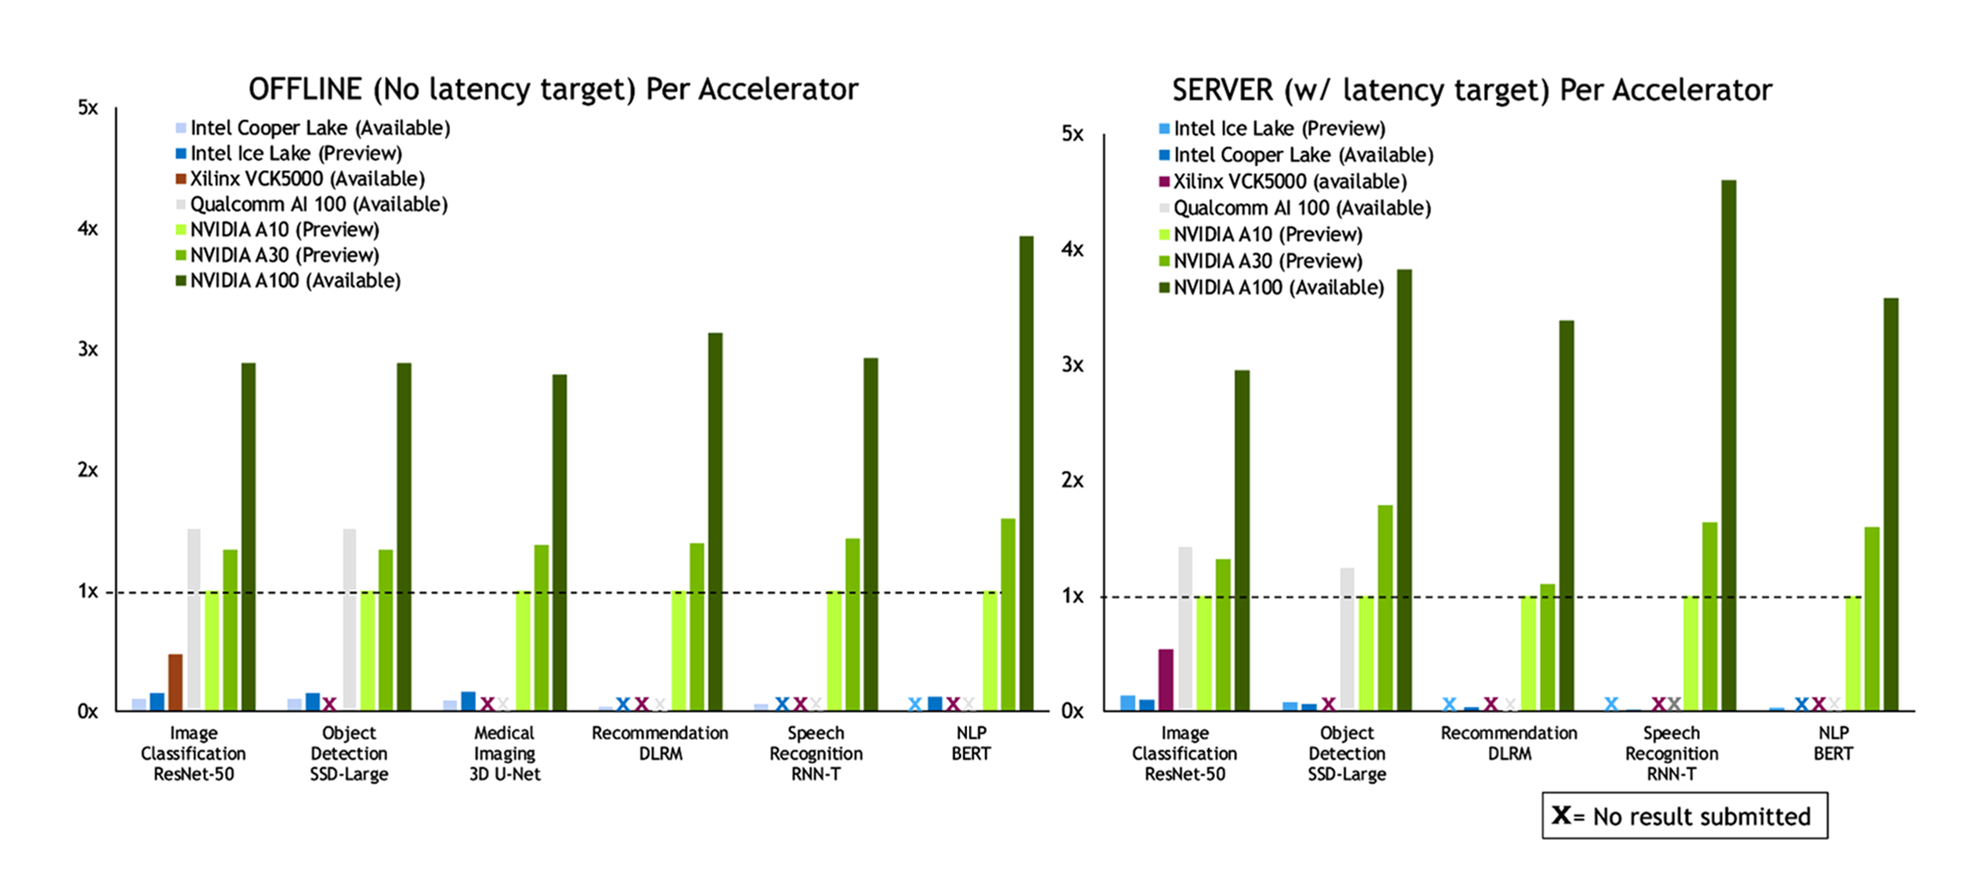 NVIDIA' delivers winning results across the board in the Data Center category of MLPerf Inference 1.0.